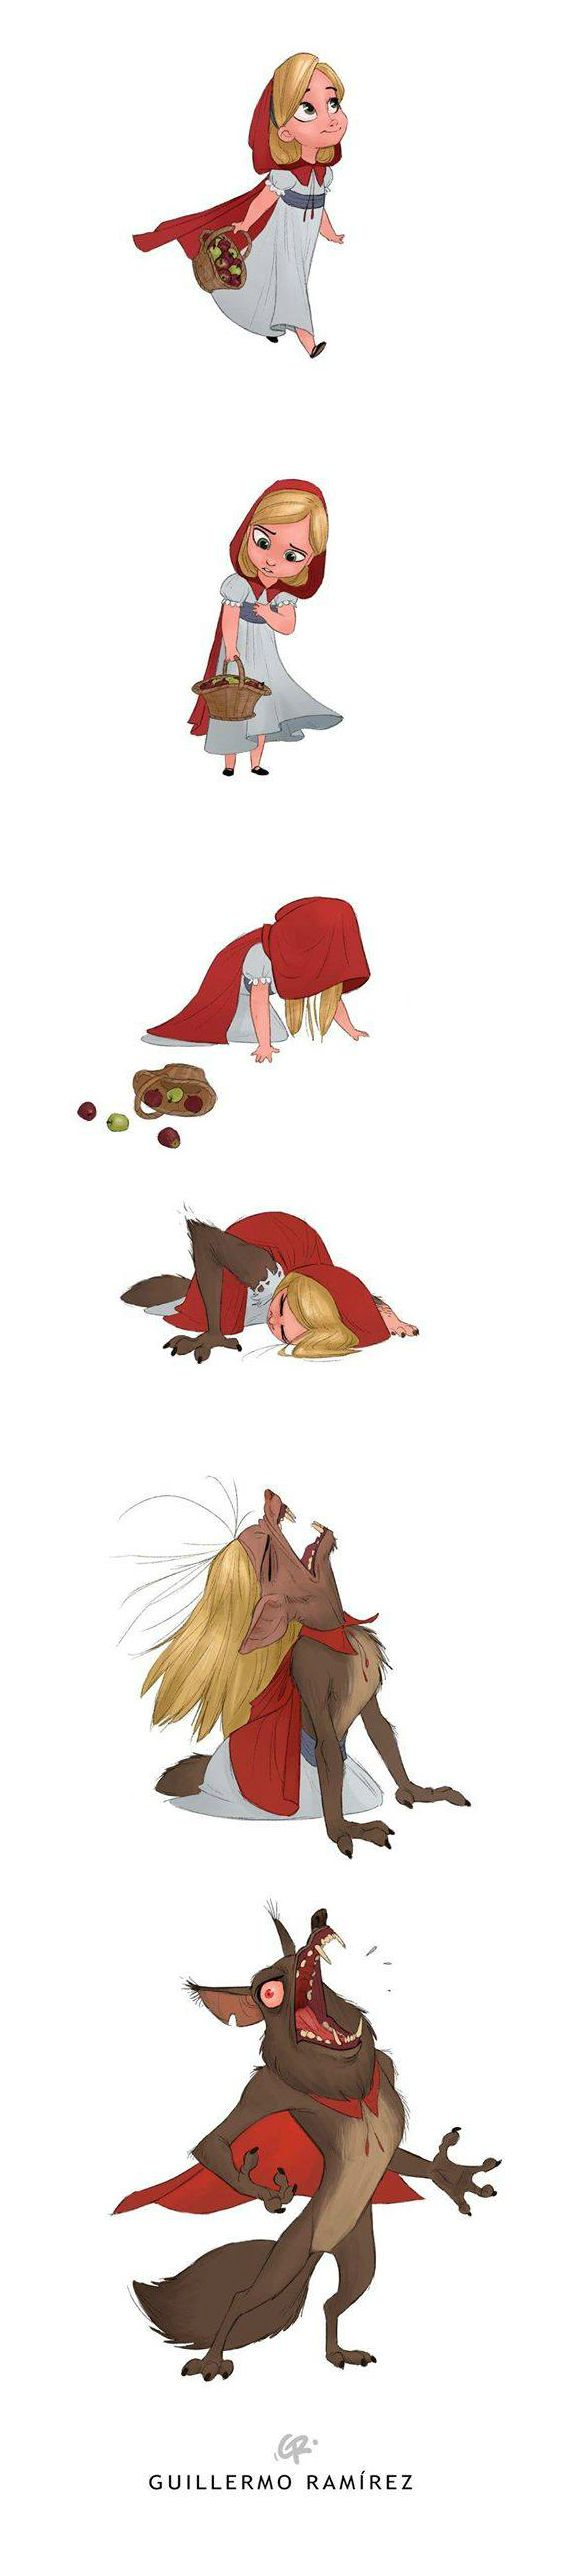 """What if little red riding hood was a werewolf?"" by Guillermo Ramírez  Blog/Website 